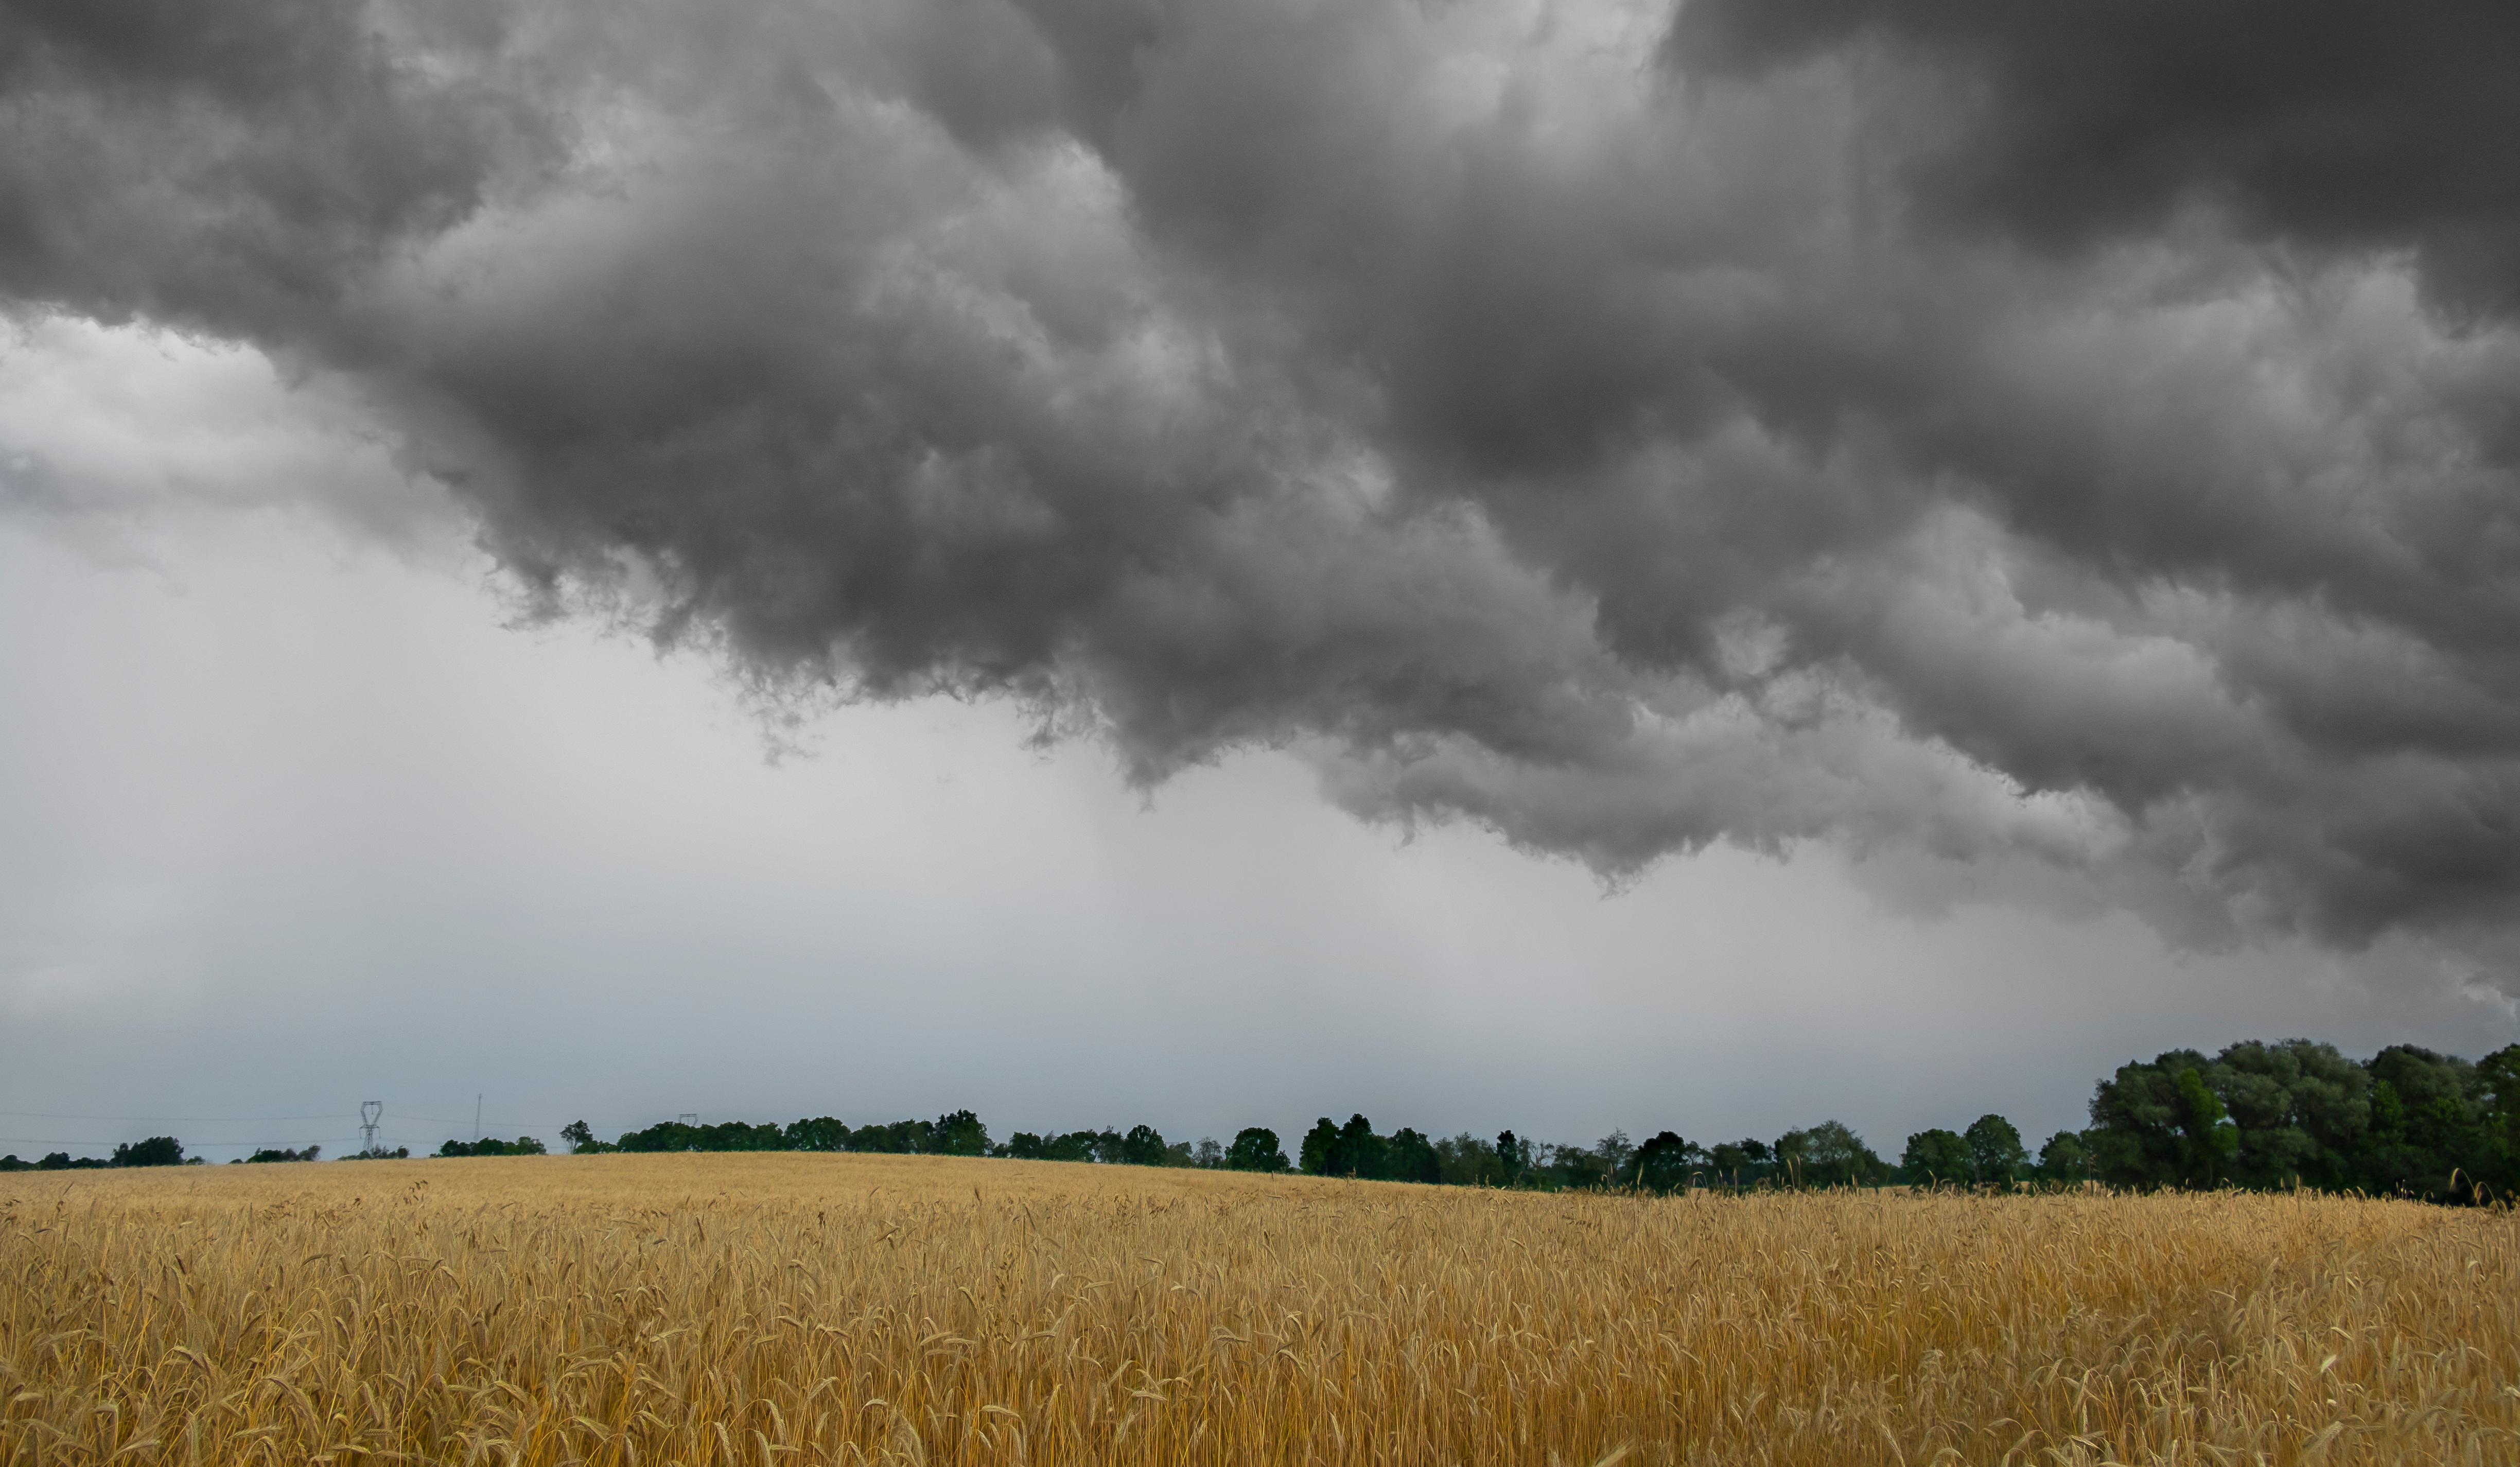 Storm Clouds over a field